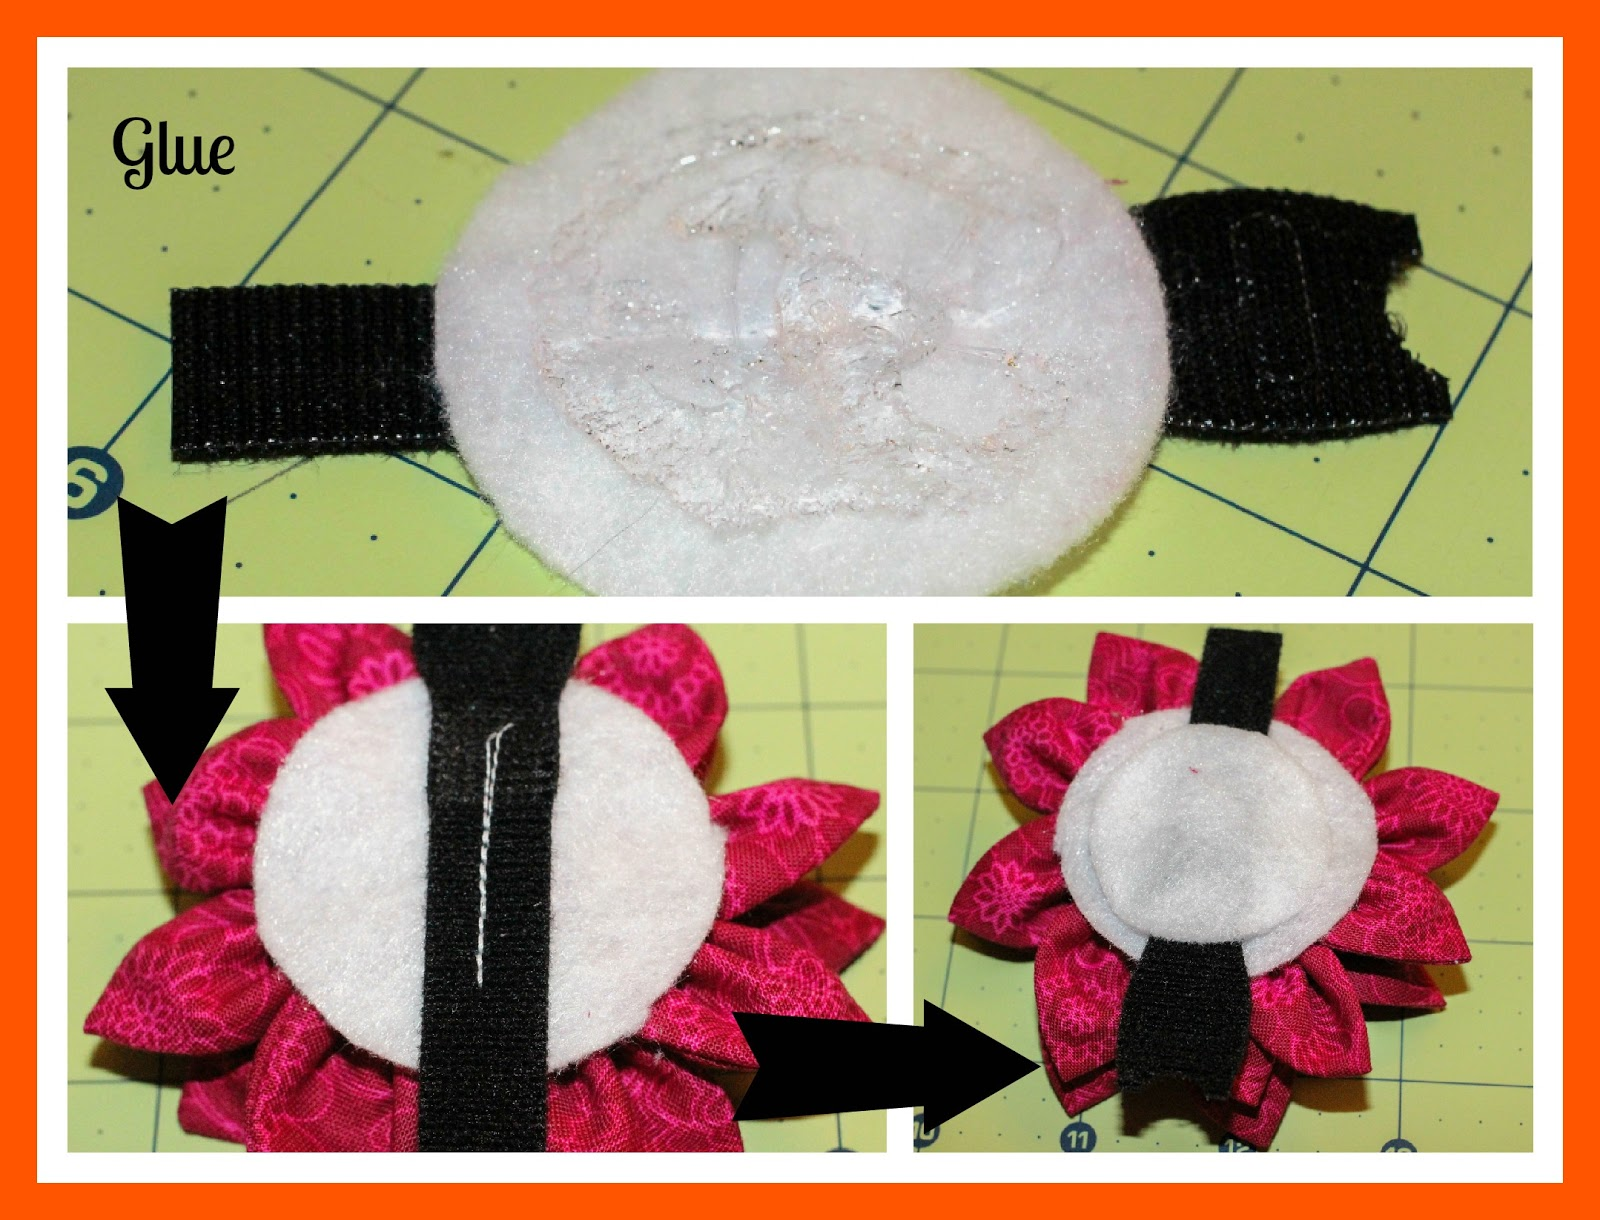 Pitlandia dog collar fabric flower tutorial next glue the 1 piece of felt on top of the velcro to hide the thread and to prevent the double sided velcro from fraying a nylon dog collar jeuxipadfo Gallery